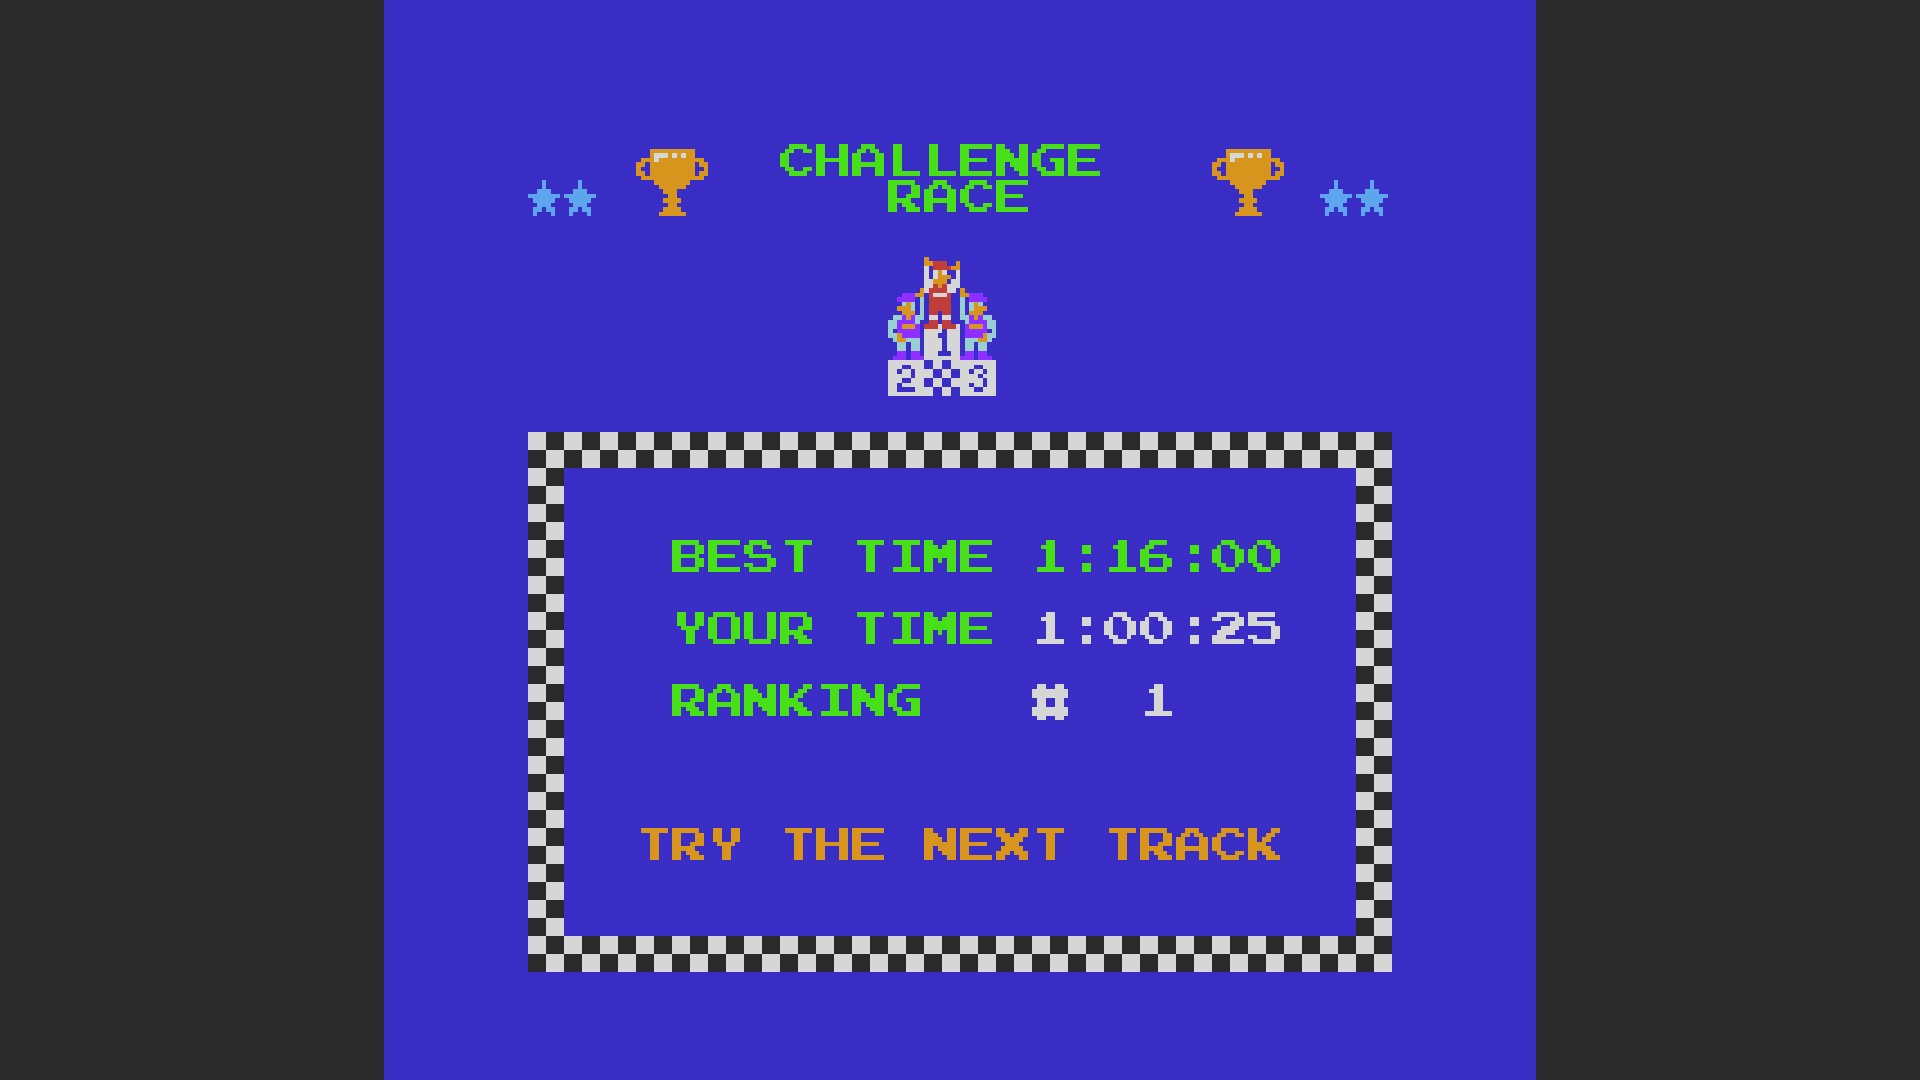 Excitebike: Track 2 time of 0:01:00.25